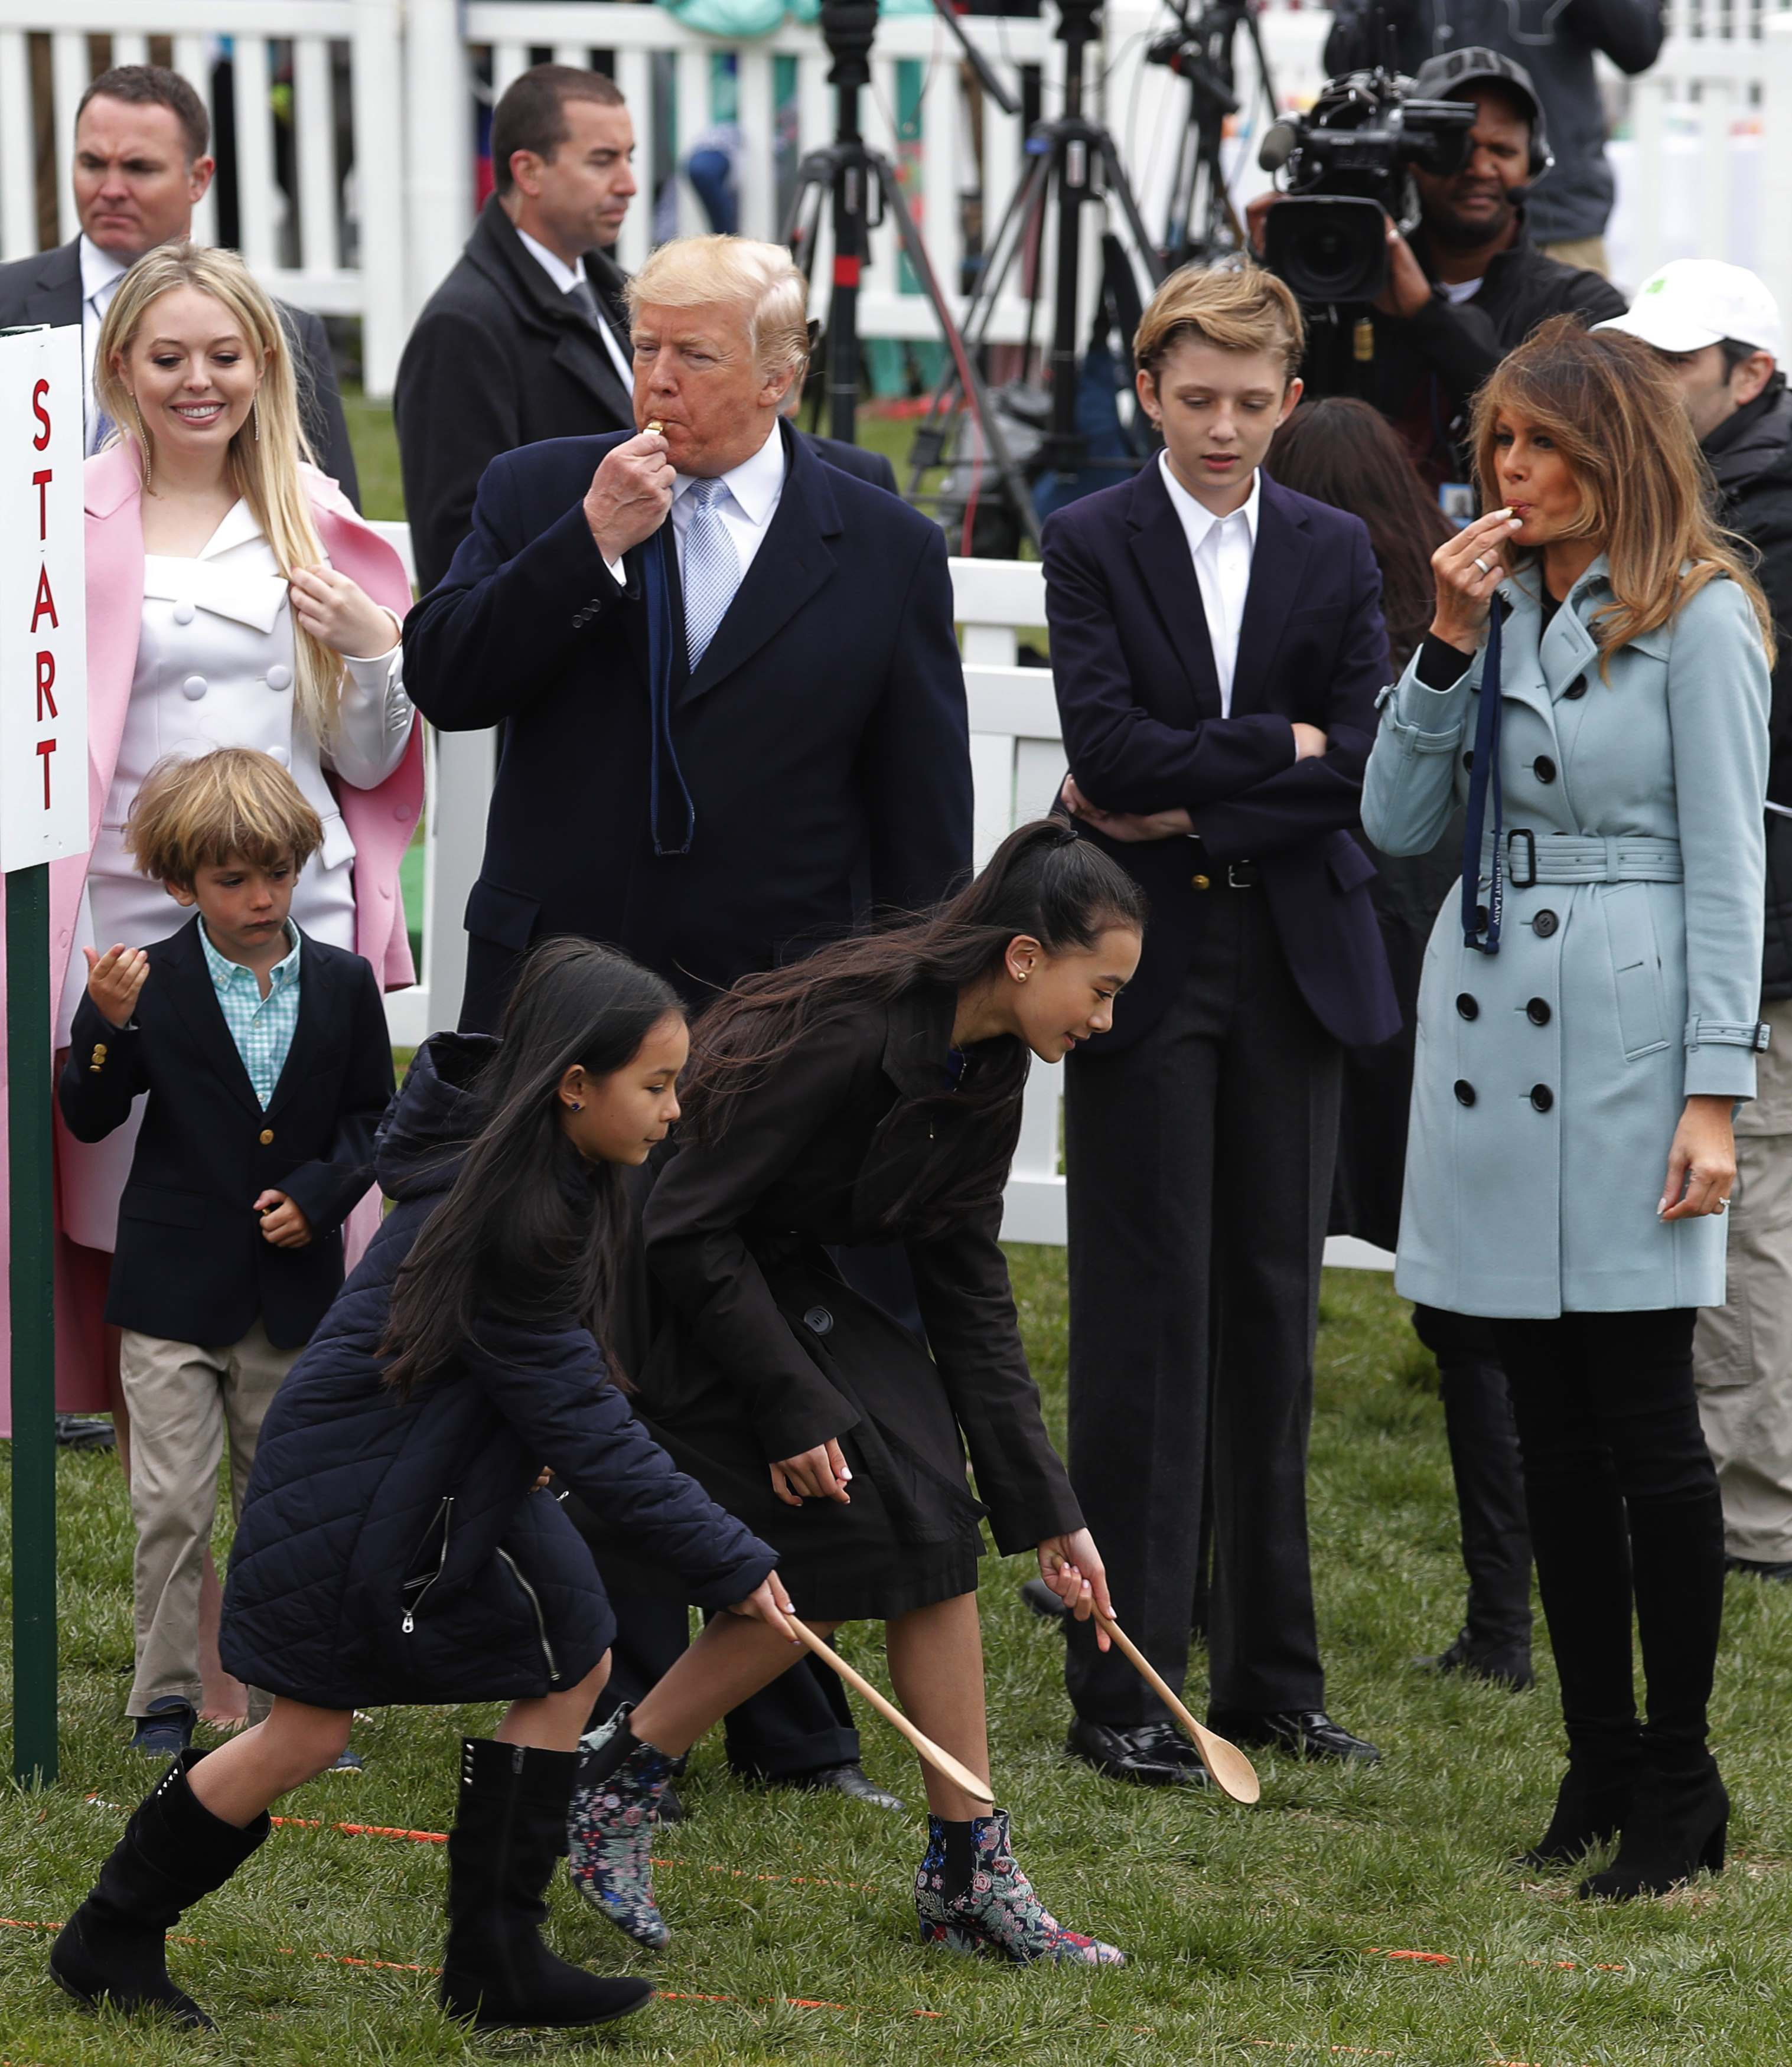 President Donald Trump and first lady Melania Trump blow whistles at the annual White House Easter Egg Roll on the South Lawn of the White House in Washington